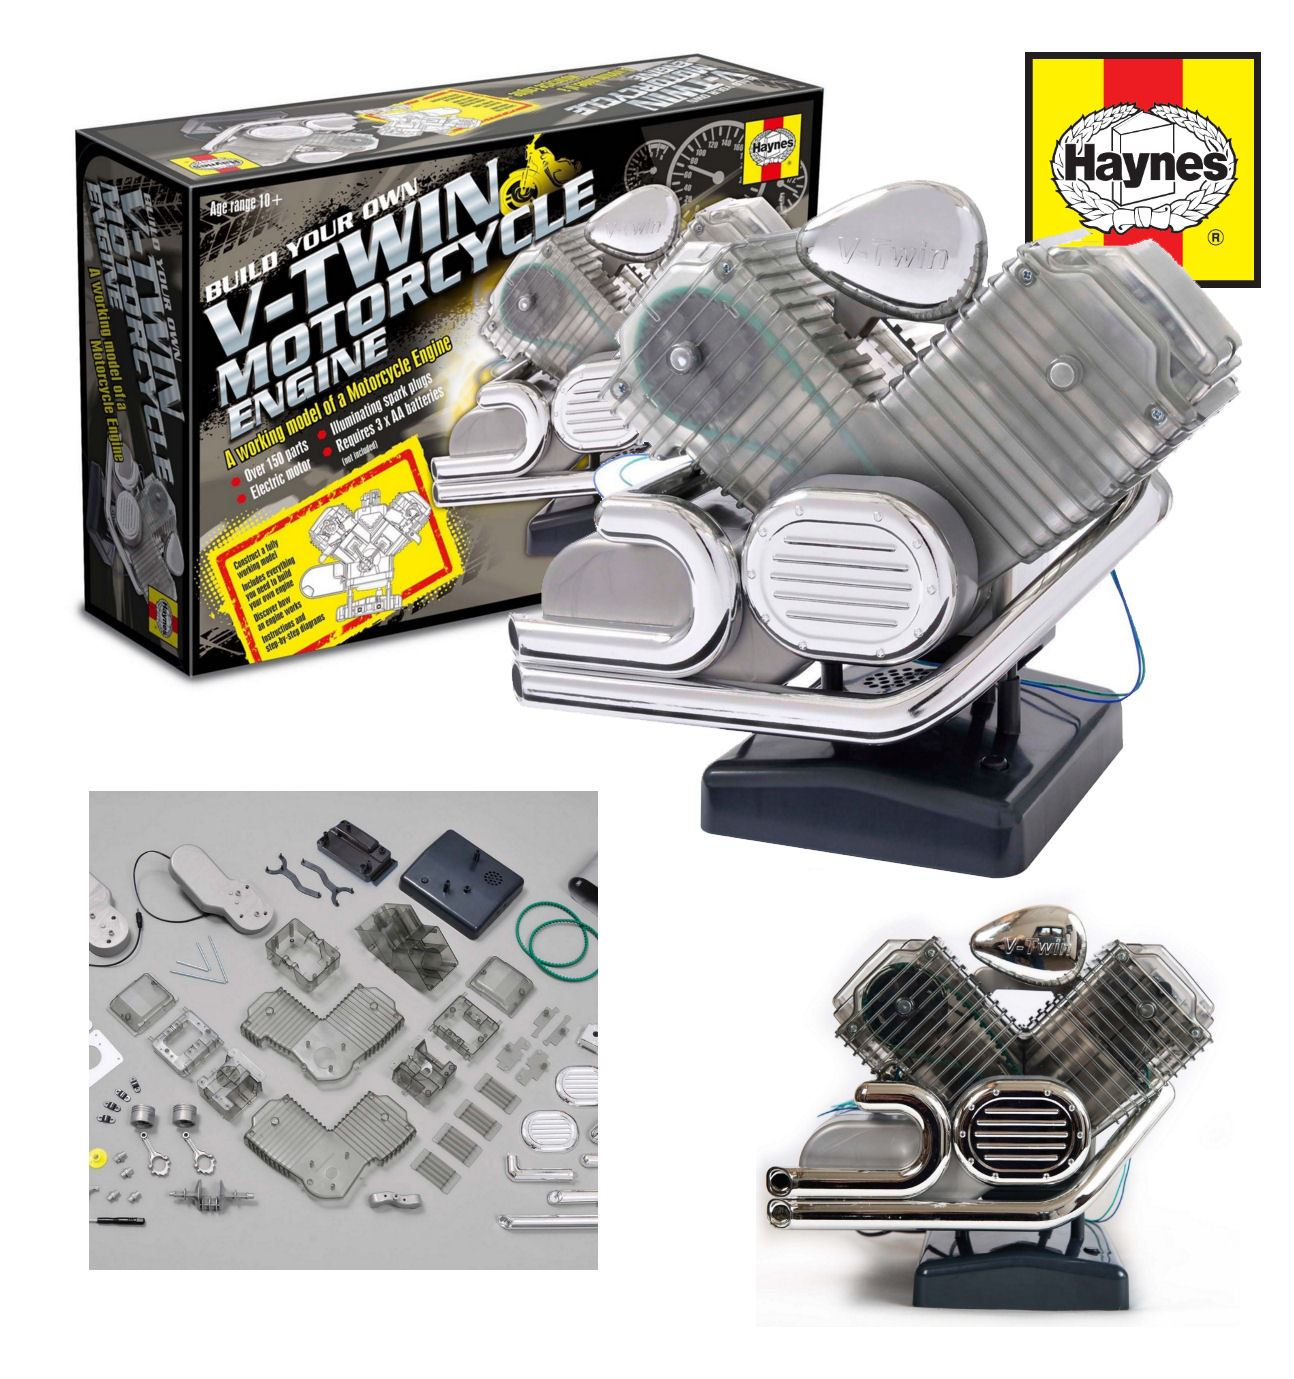 Motorcycle Engine Kits : Haynes motorcycle v twin engine kit build your own model